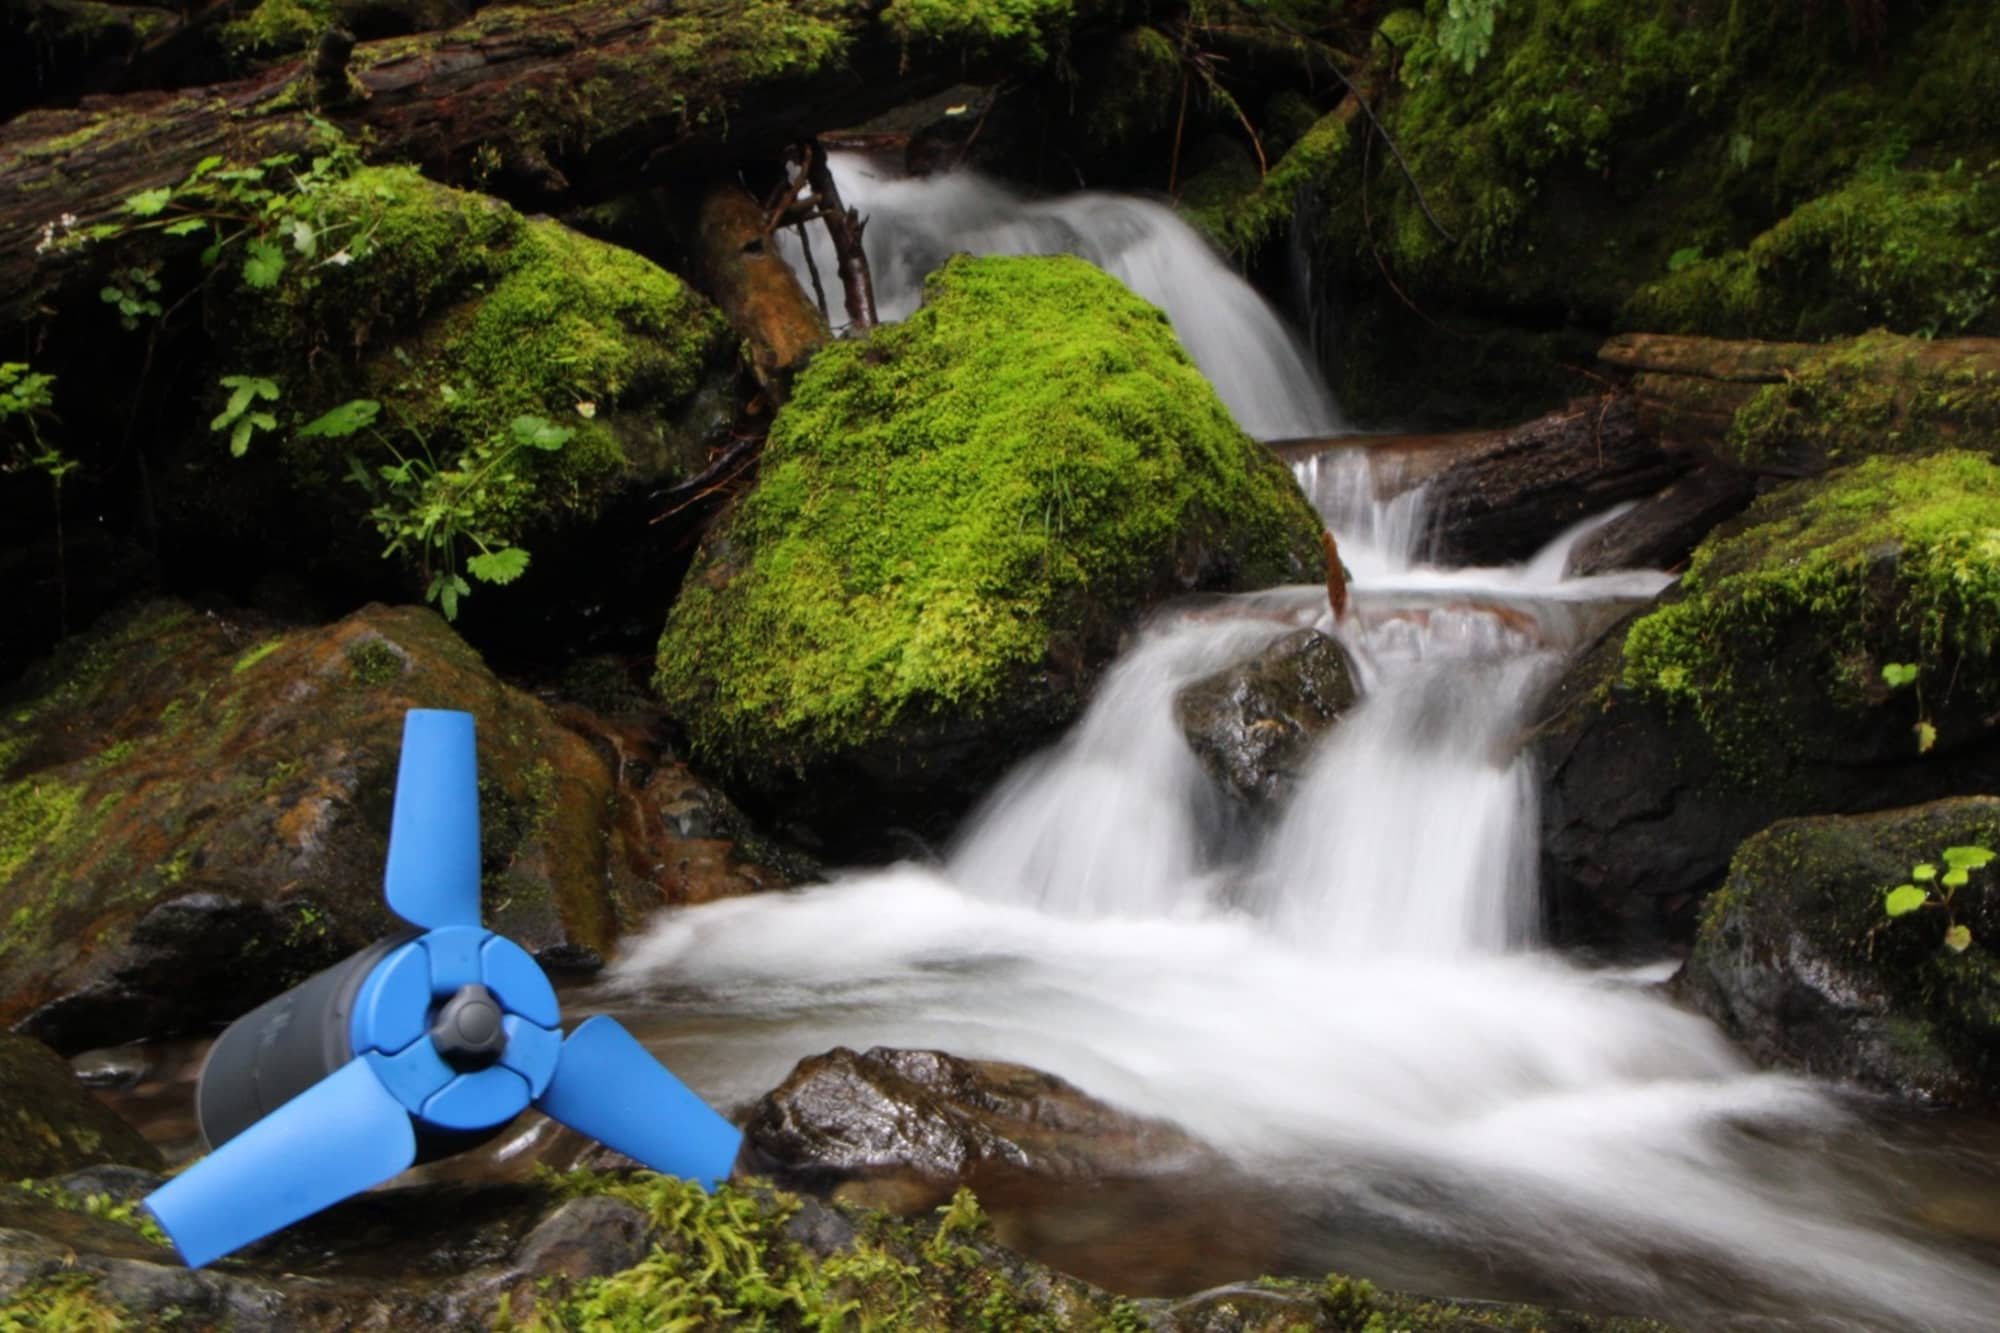 Estream a portable water turbine to power electronic devices